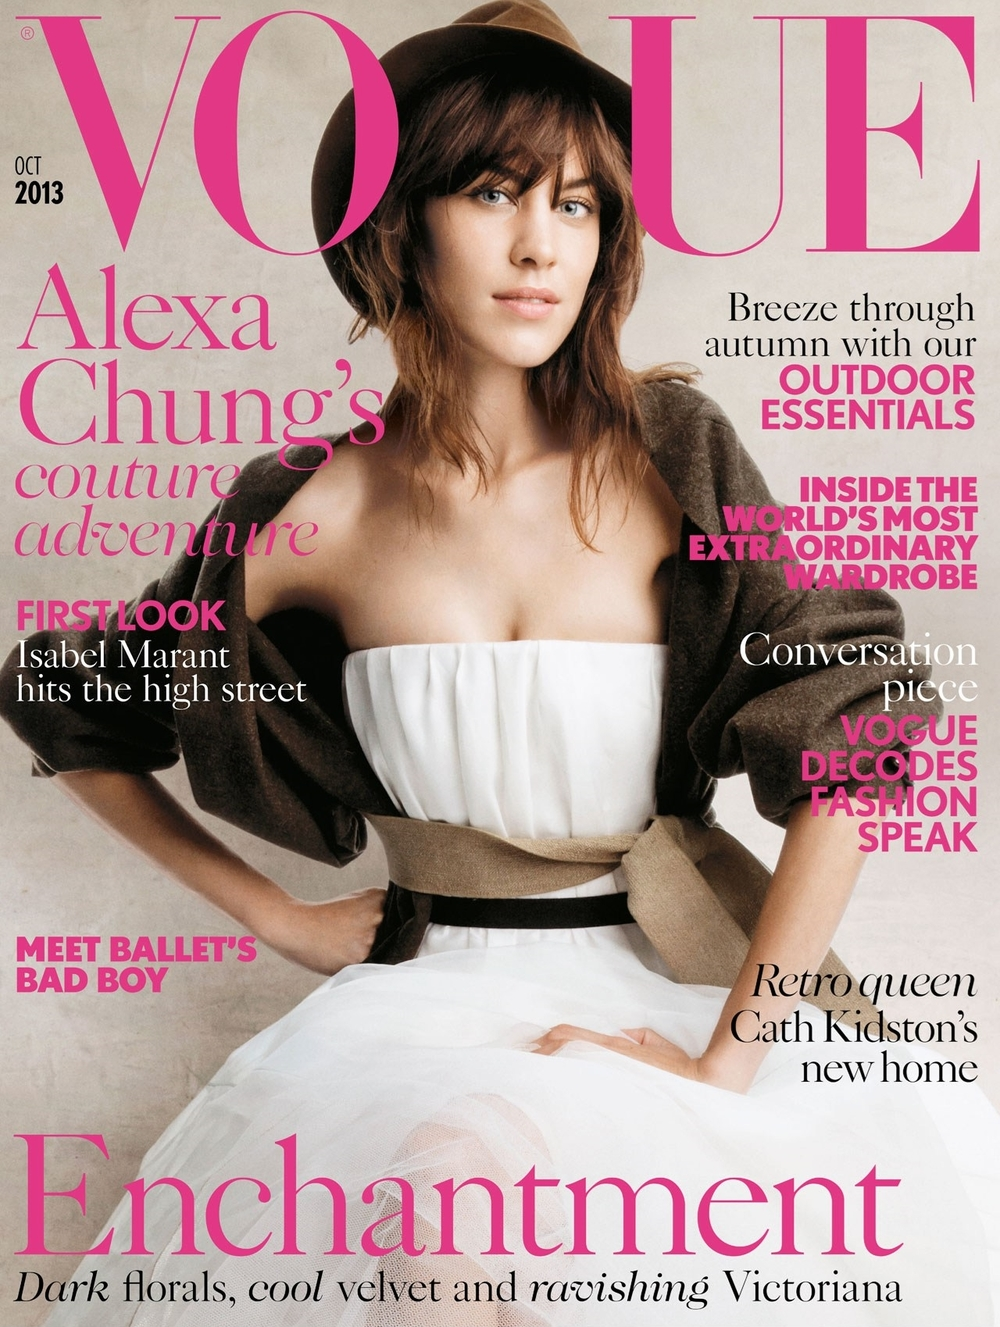 college_living_alexa_chung_vogue.jpg